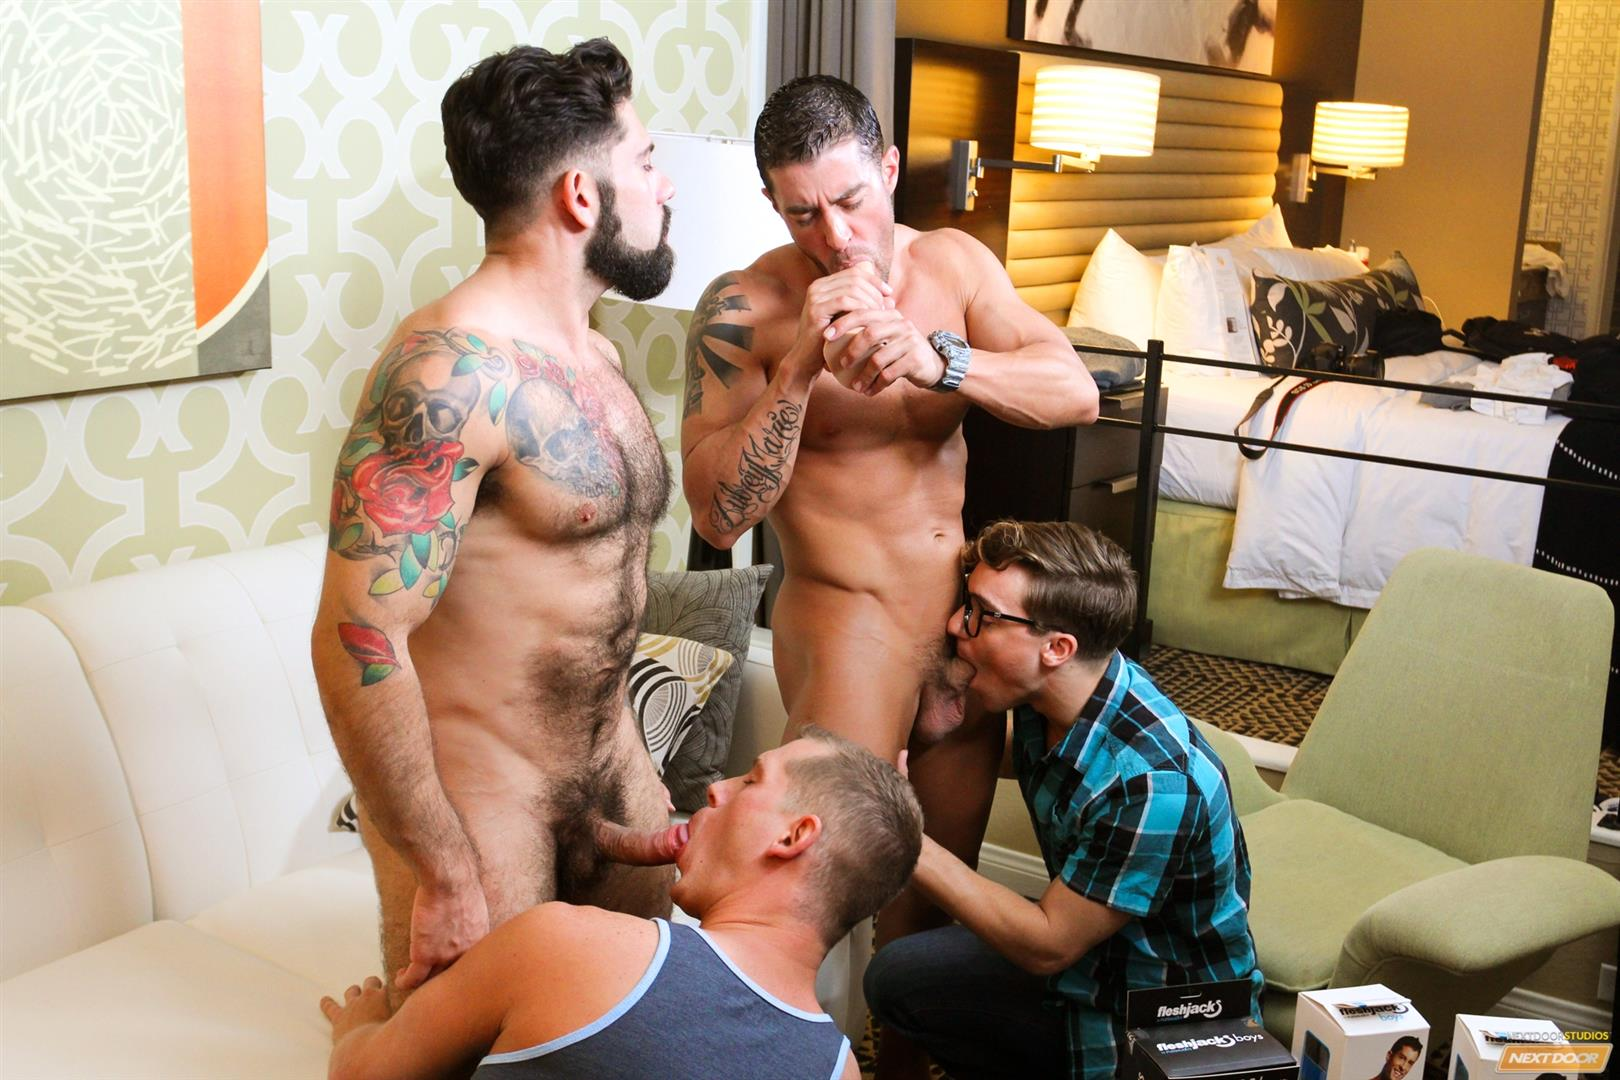 Cody Cummings and Tyler Morgan and Alessandro Del Torro Cock Sucking Lessons Amateur Gay Porn 12 Cody Cummings Gives The Boys Cock Sucking Lessons